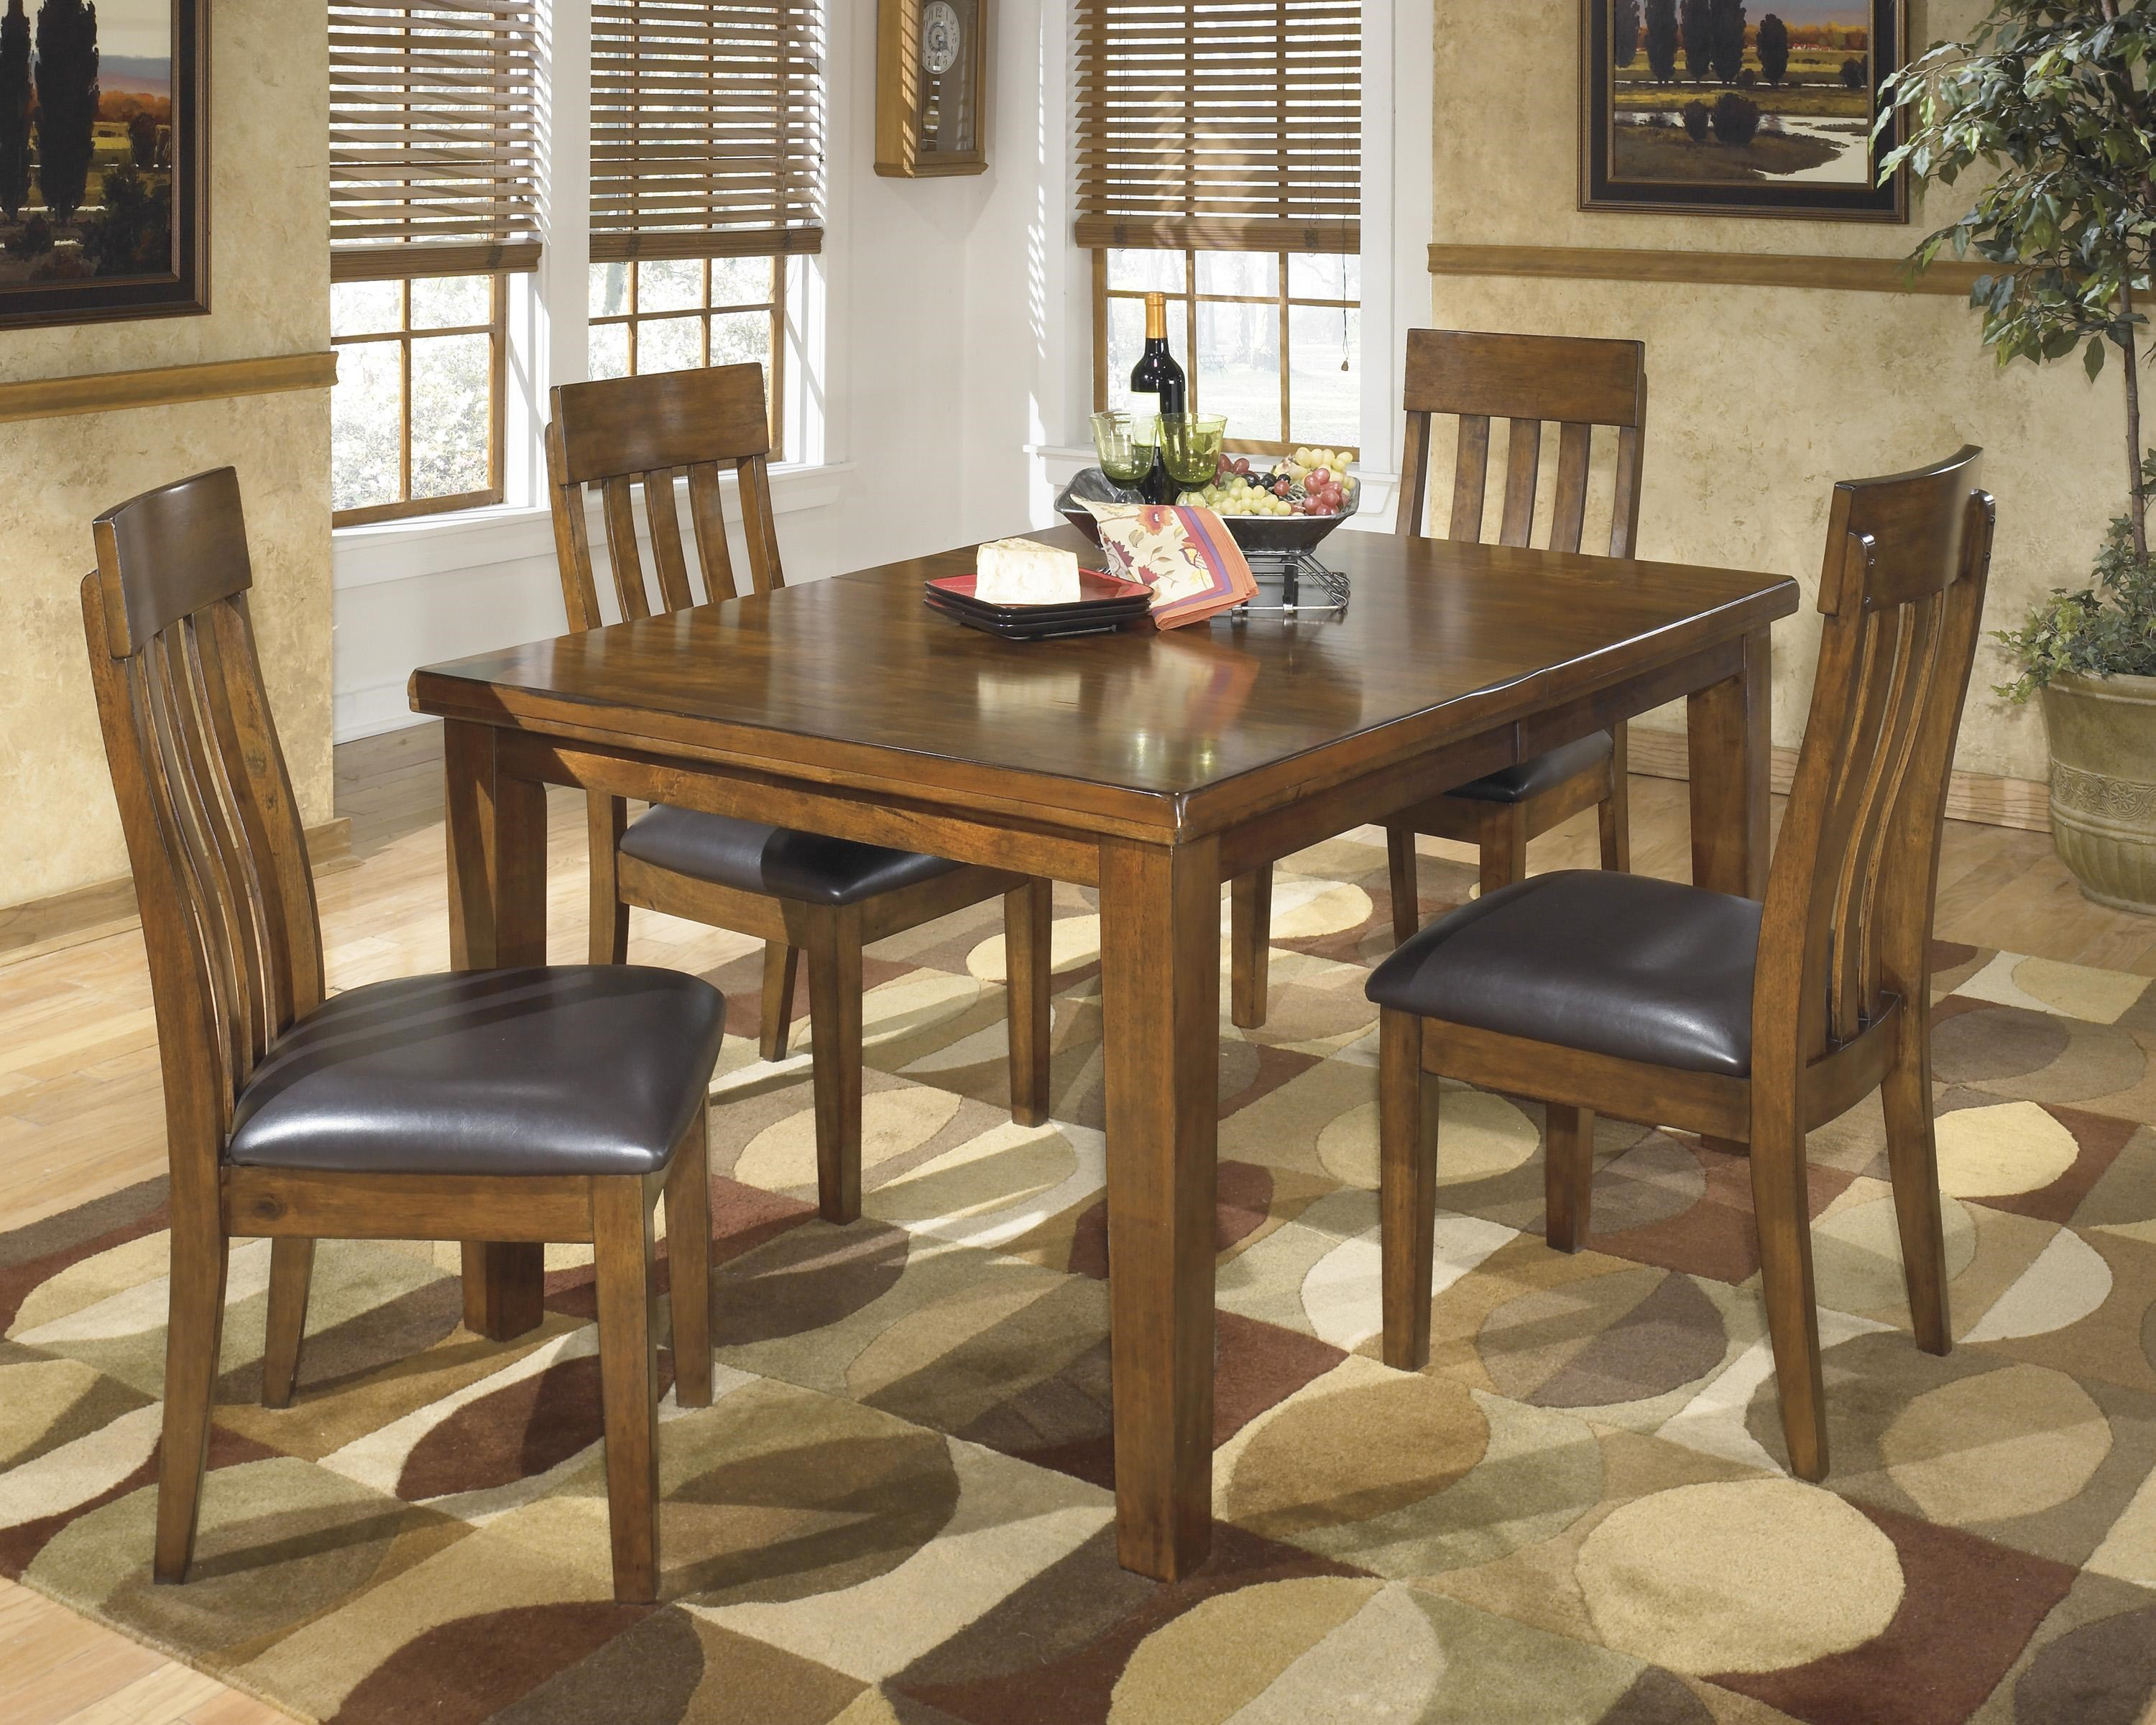 Exceptionnel Signature Design By Ashley Ralene Casual 5 Piece Dining Set With Butterfly  Extension Leaf